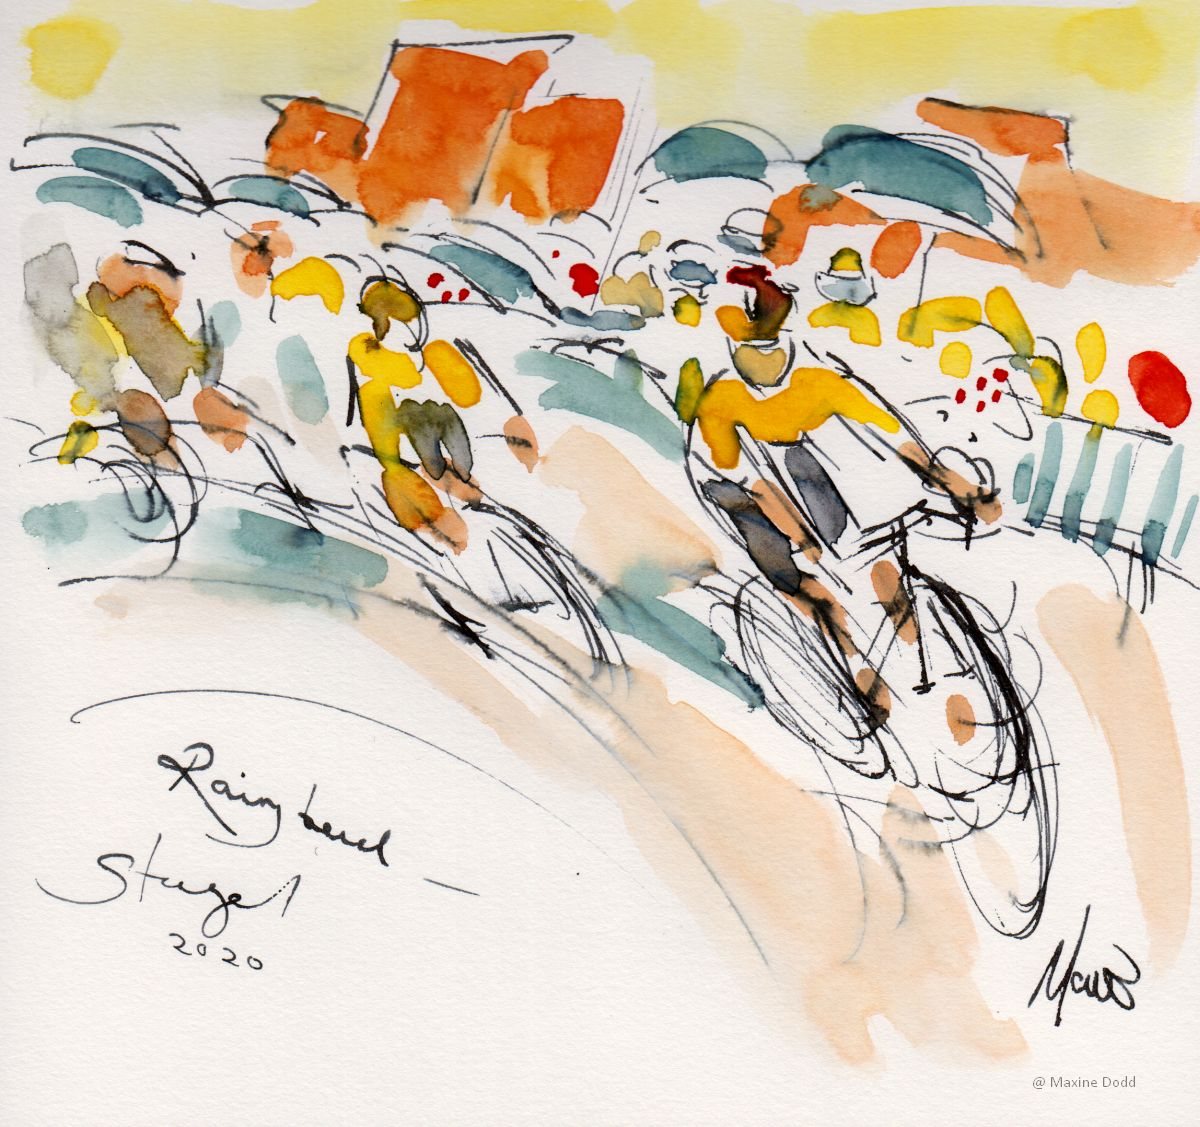 Jumbo-Visma team from Stage 1 TDF2020 on a rainy bend - watercolour pen and ink by Maxine Dodd